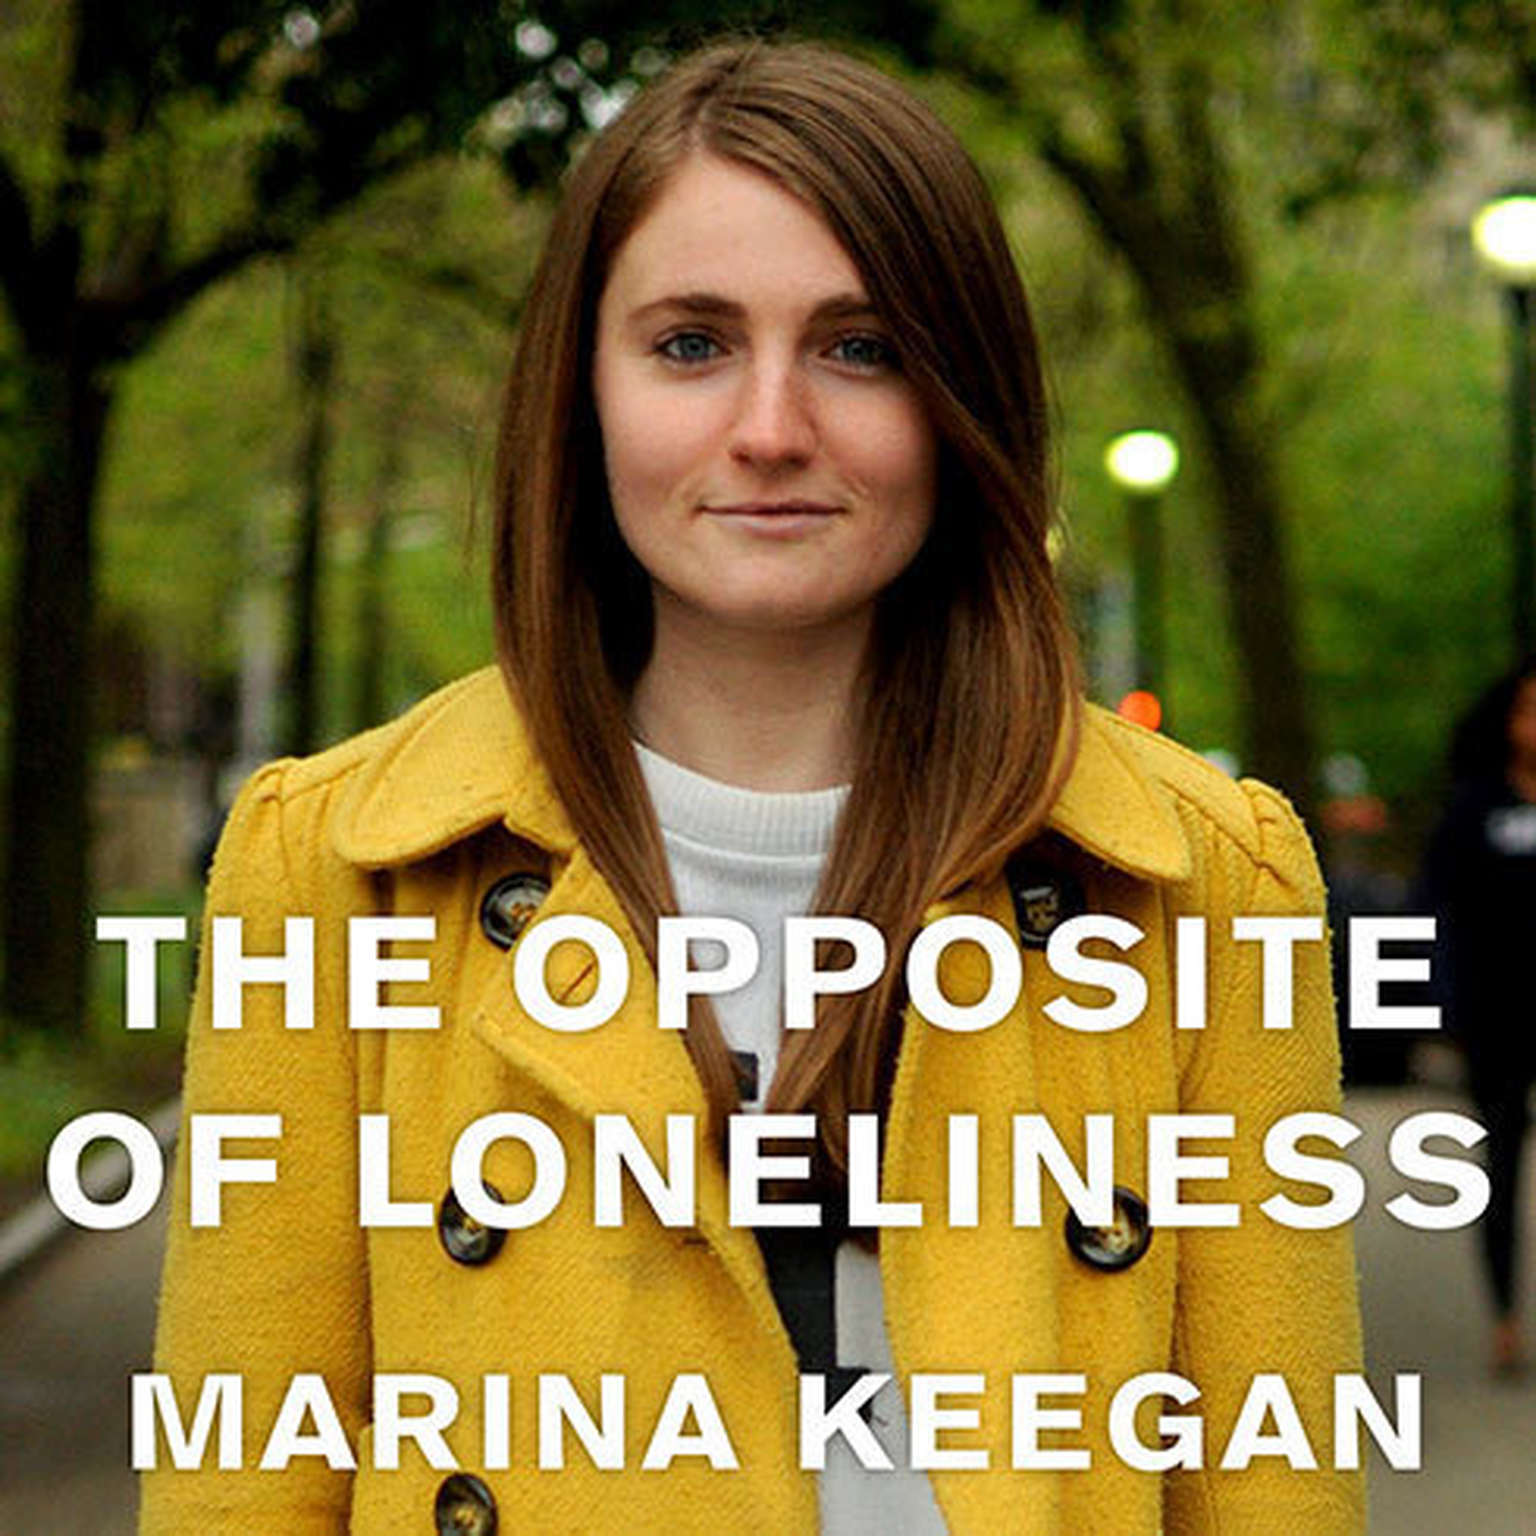 006 The Opposite Of Loneliness Essay Example Bqfu Square Fascinating Book Essays And Stories Full